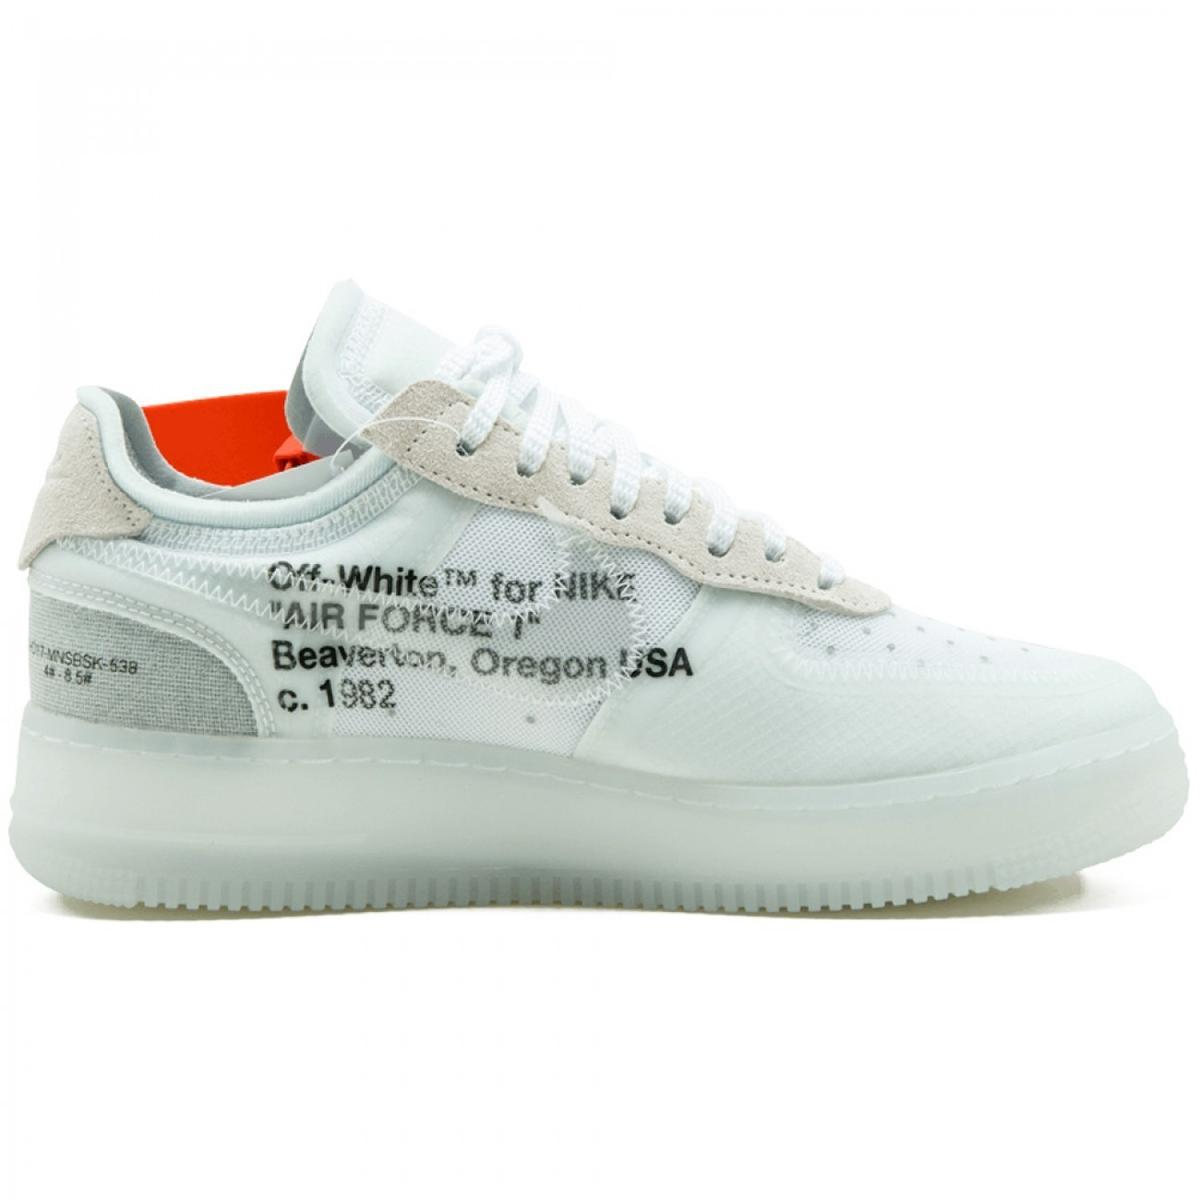 Nike x Off White Air Force 1 Low Virgil Abloh